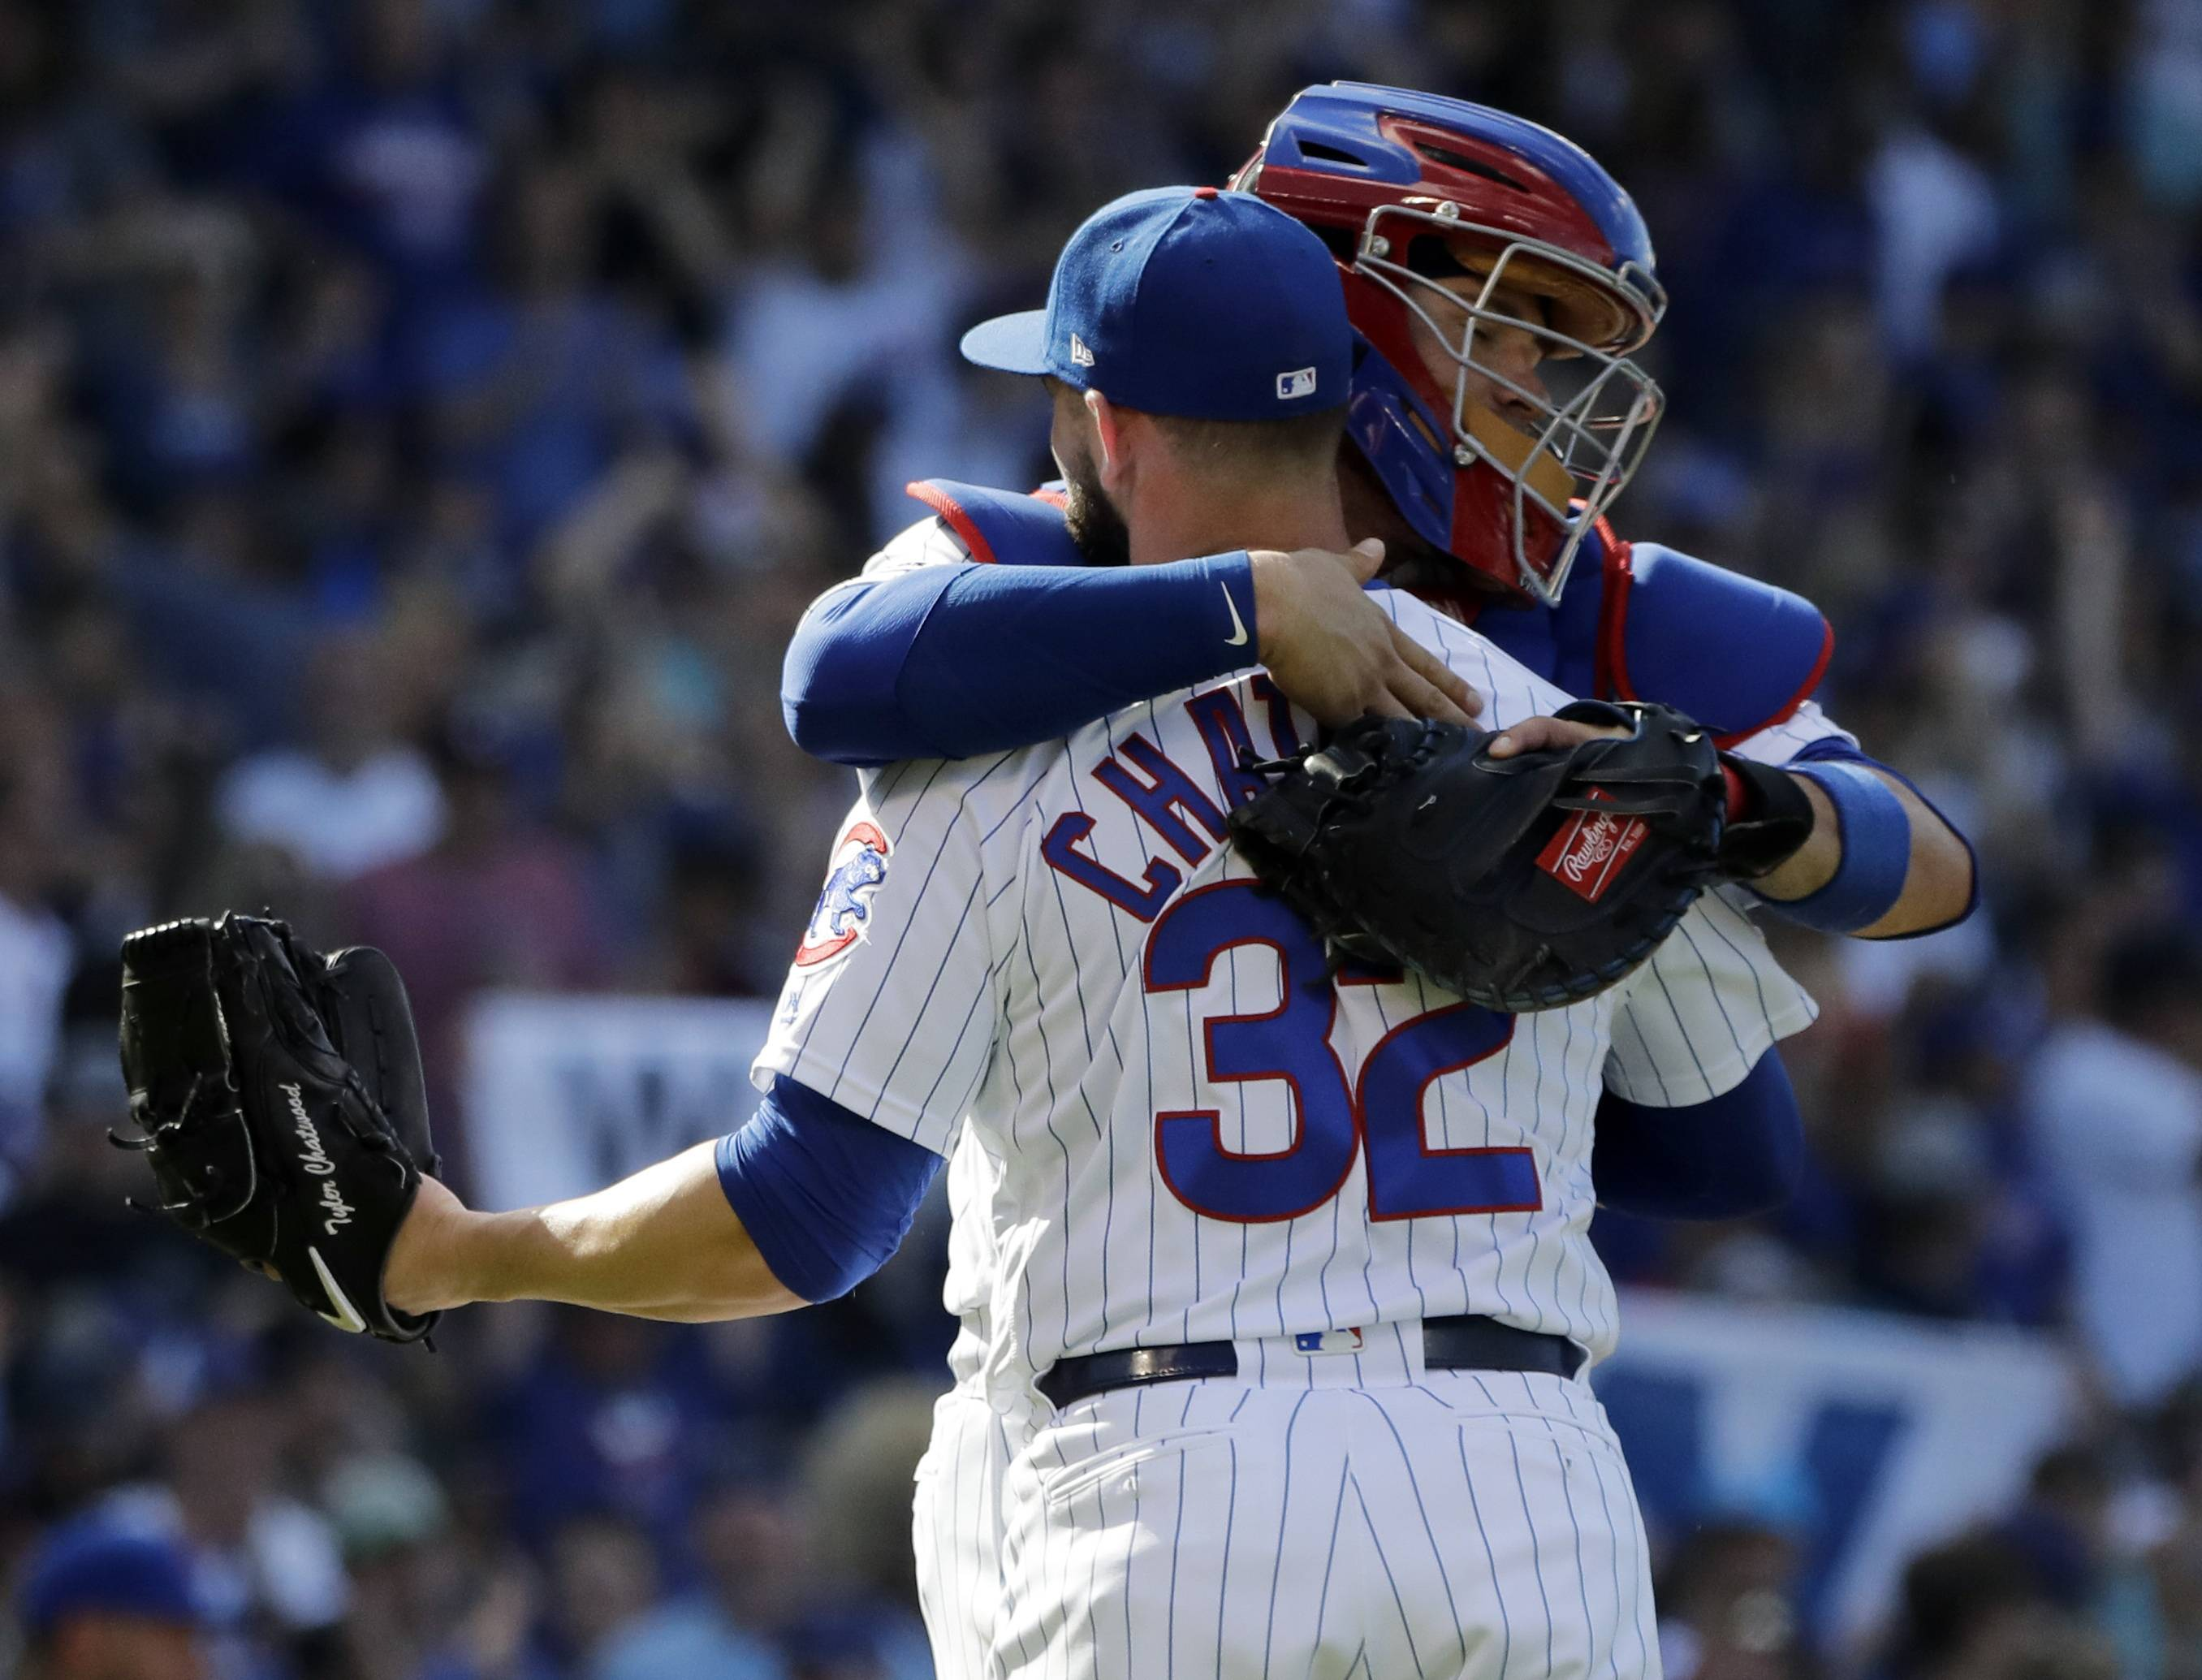 Chicago Cubs relief pitcher Tyler Chatwood (32) celebrates with catcher Victor Caratini after the Cubs defeated the Cincinnati Reds 8-6 in a baseball game, Saturday, May 25, 2019, in Chicago. (AP Photo/Nam Y. Huh)